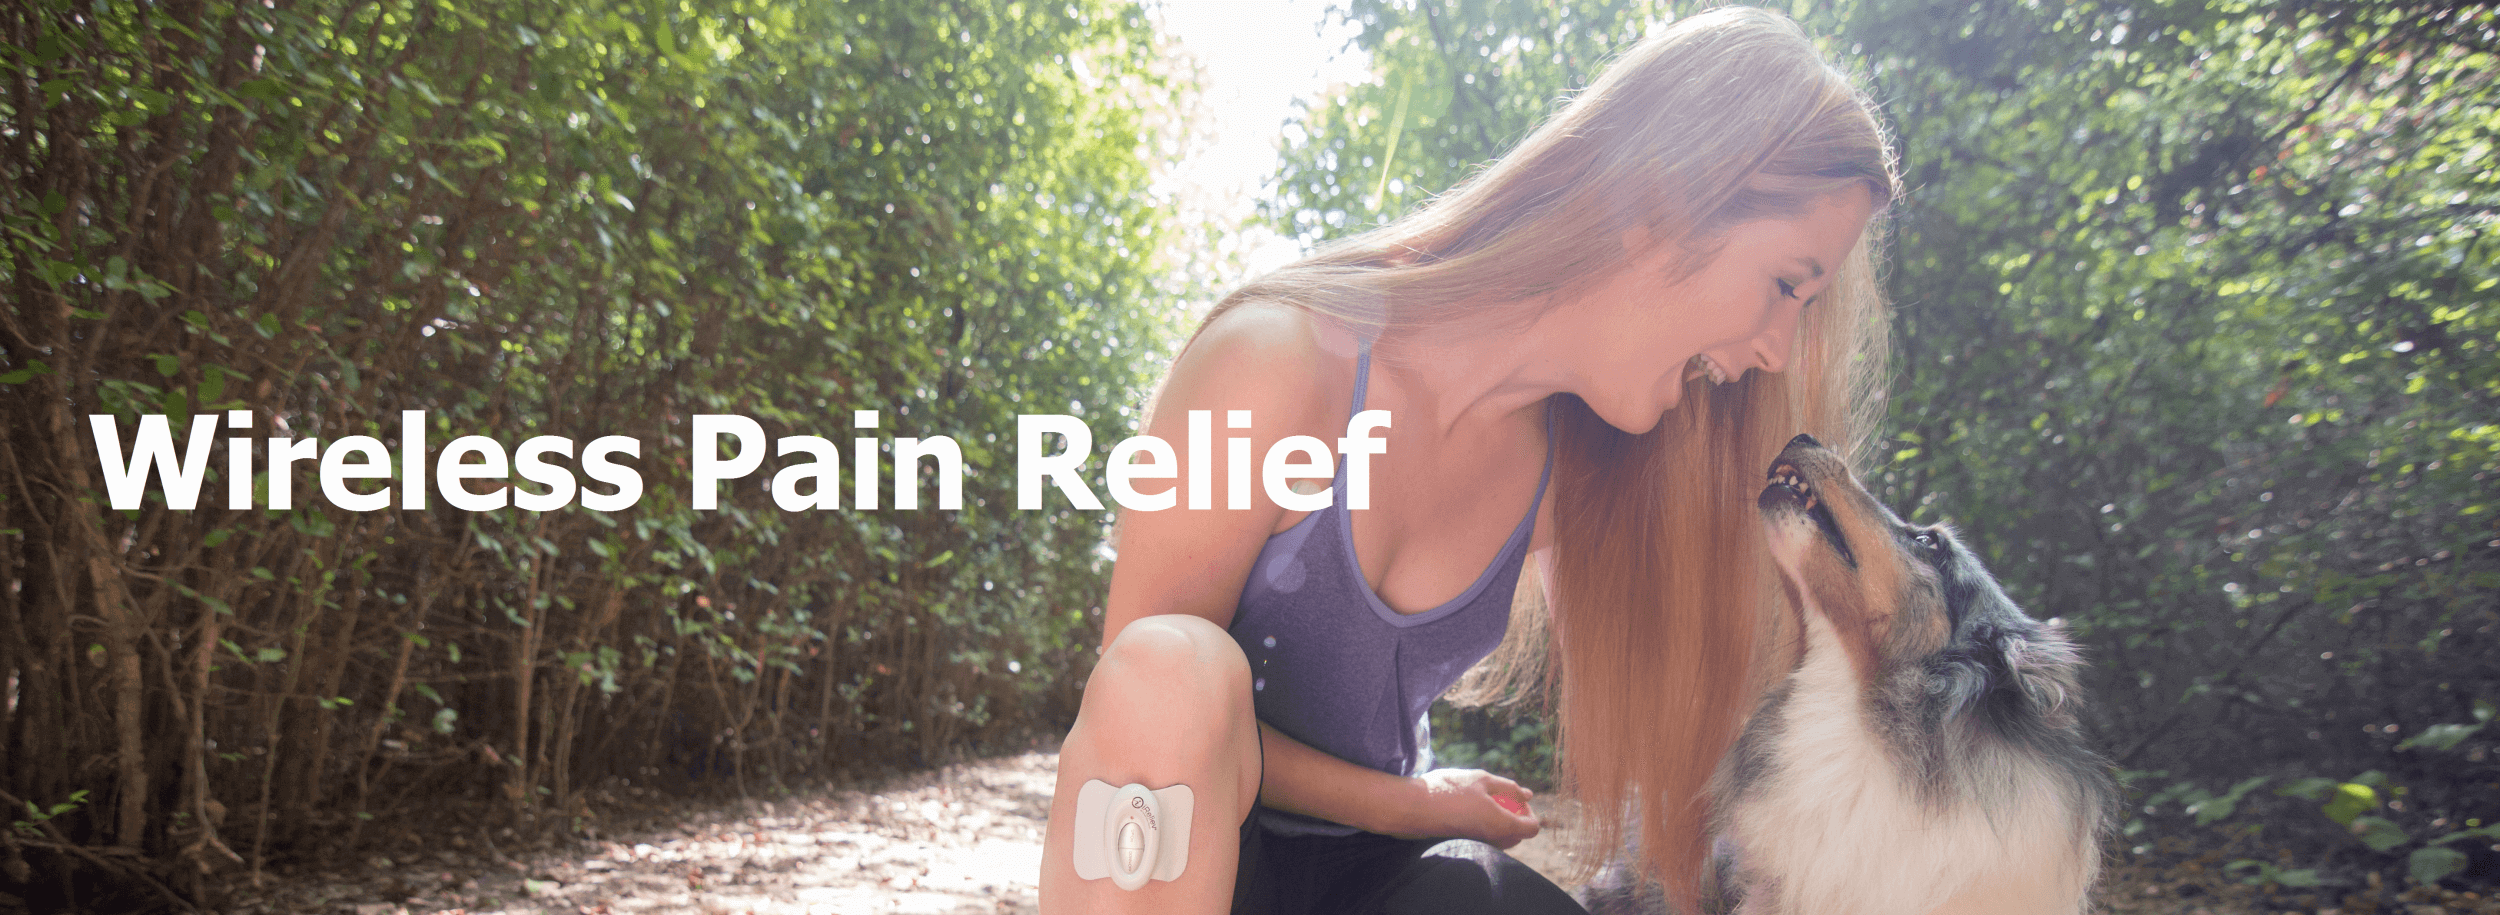 wireless-pain-relief1